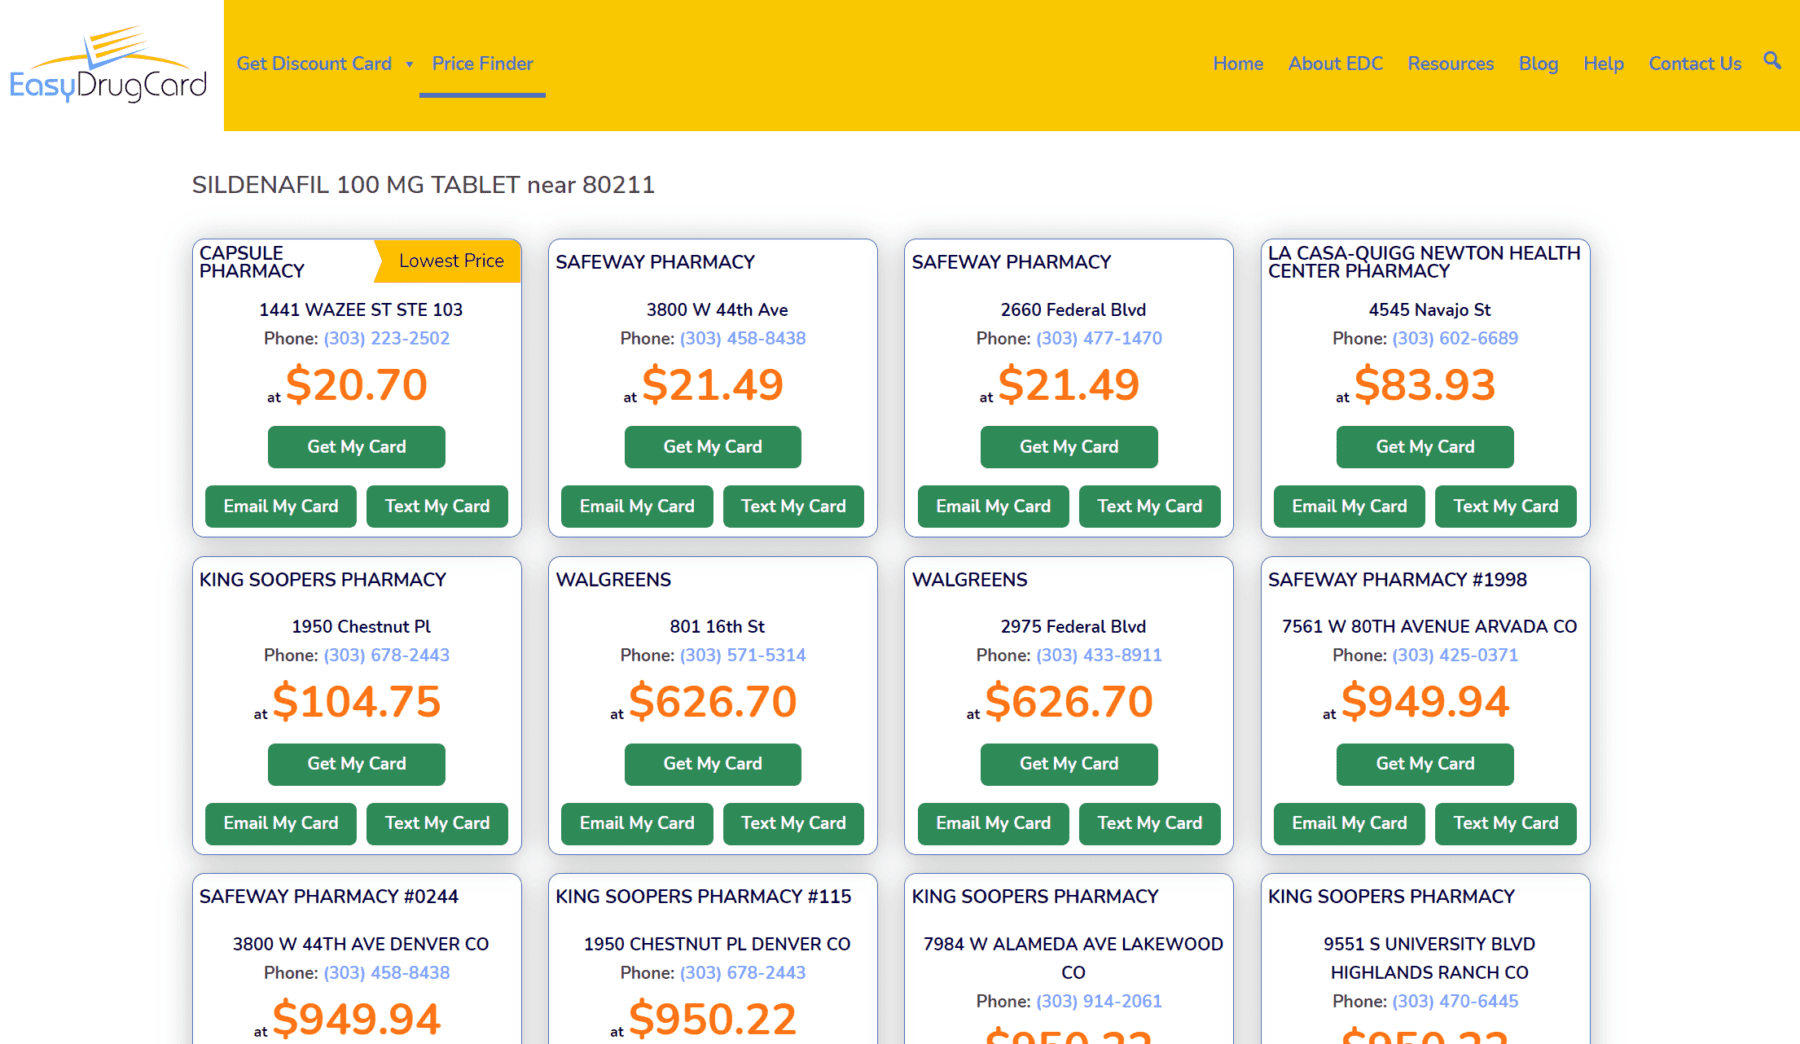 image of Easy Drug Card pricing tool